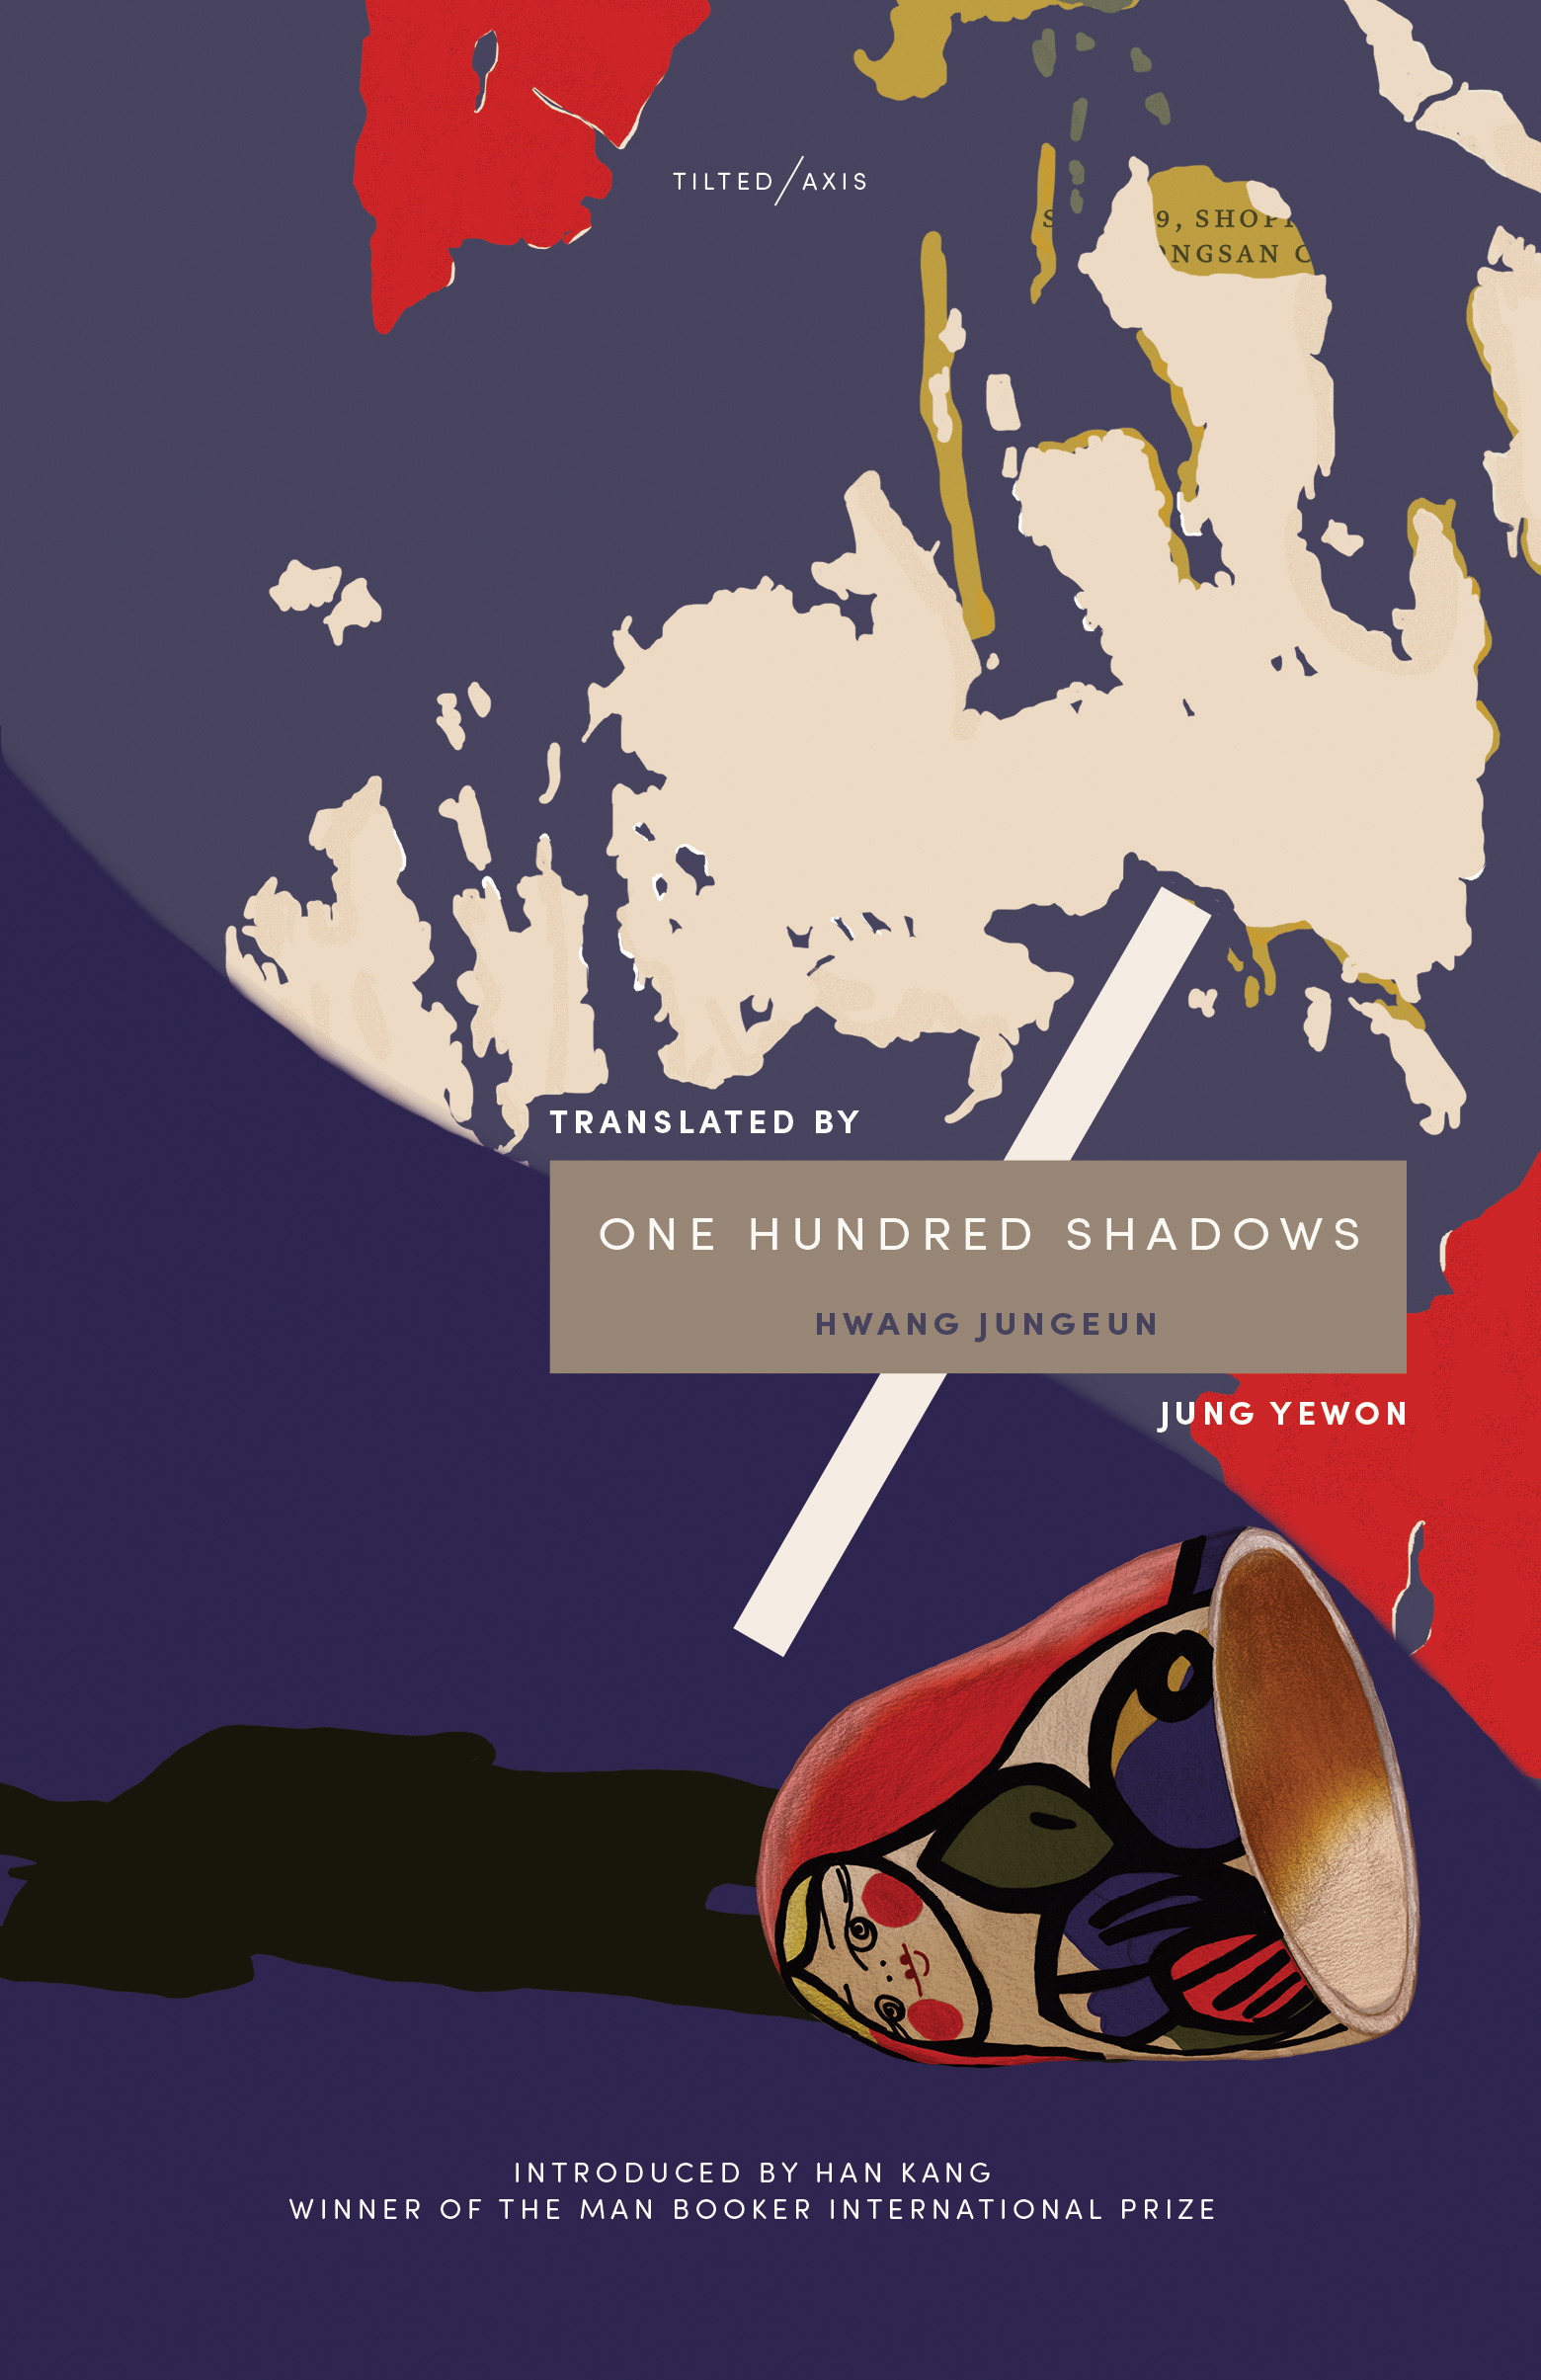 One Hundred Shadows by Hwang Jungeun